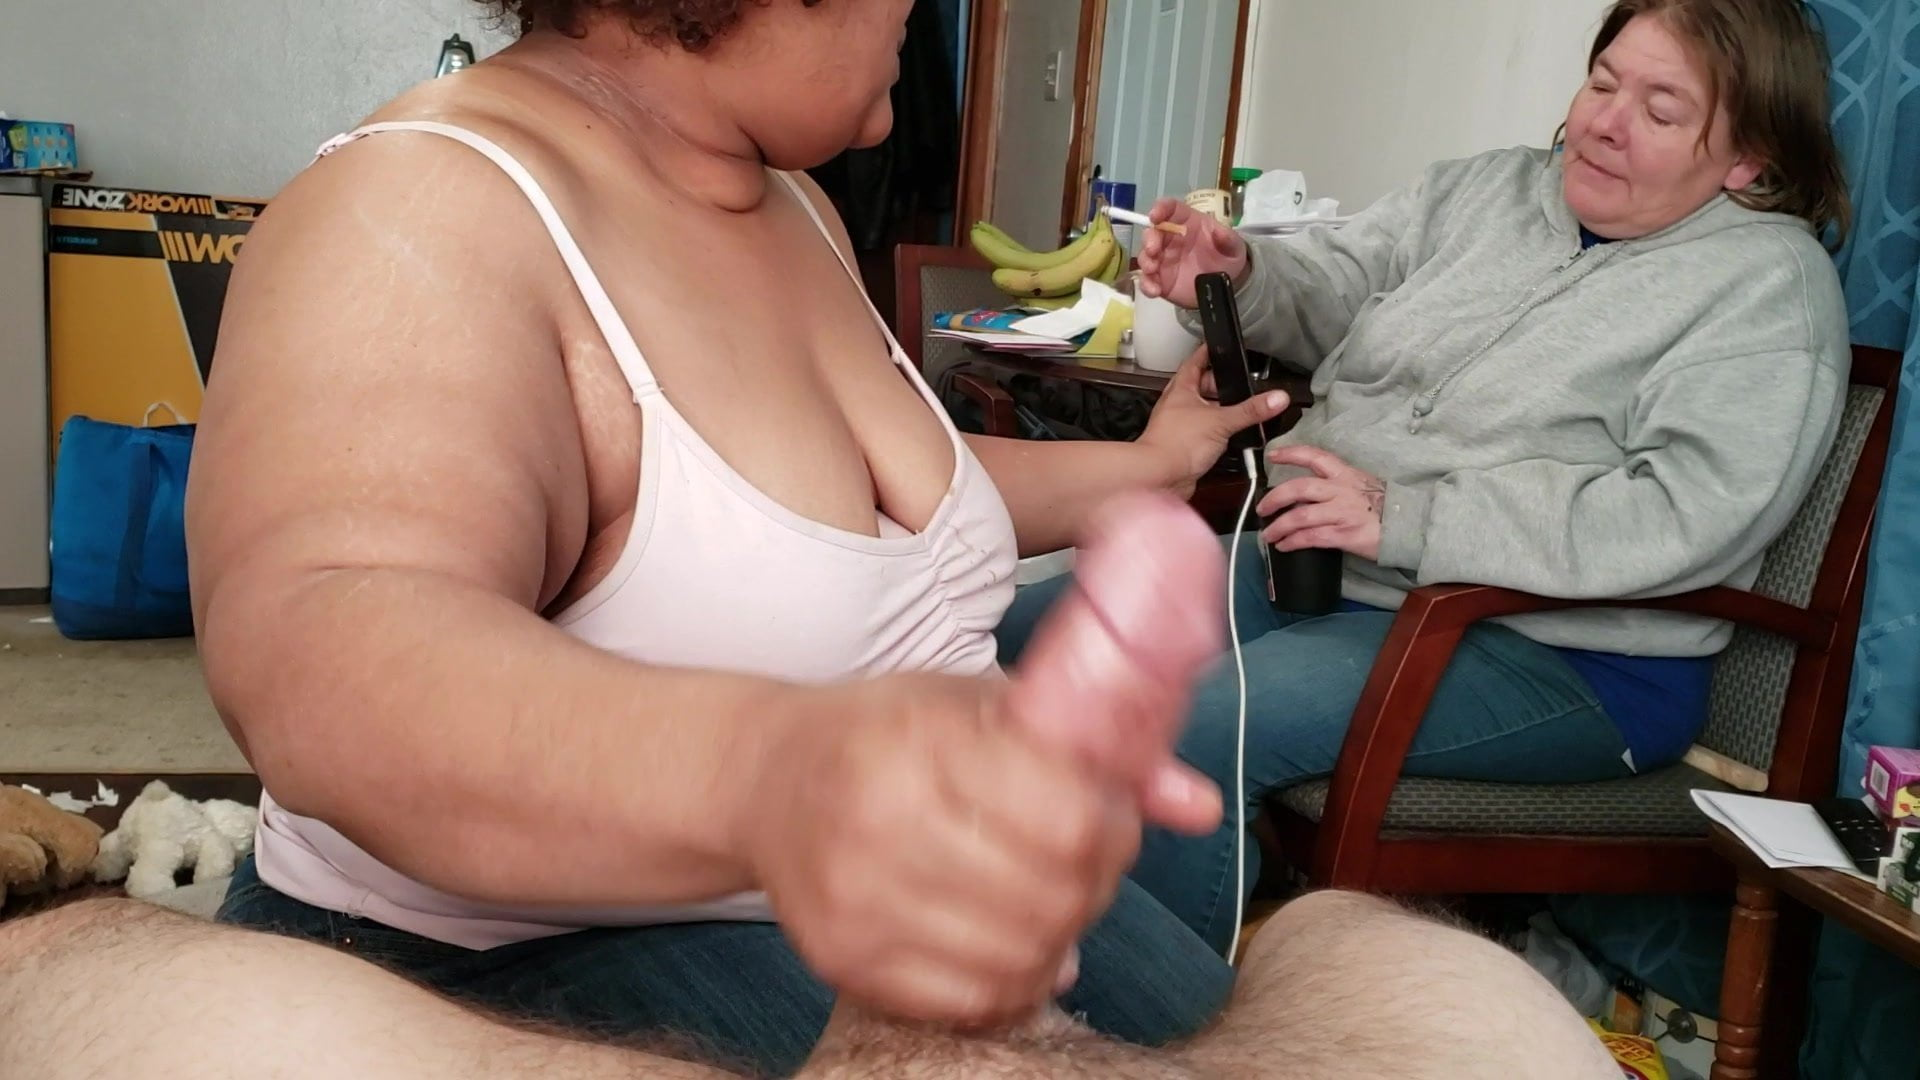 Girl Watches Guy Jerk Off